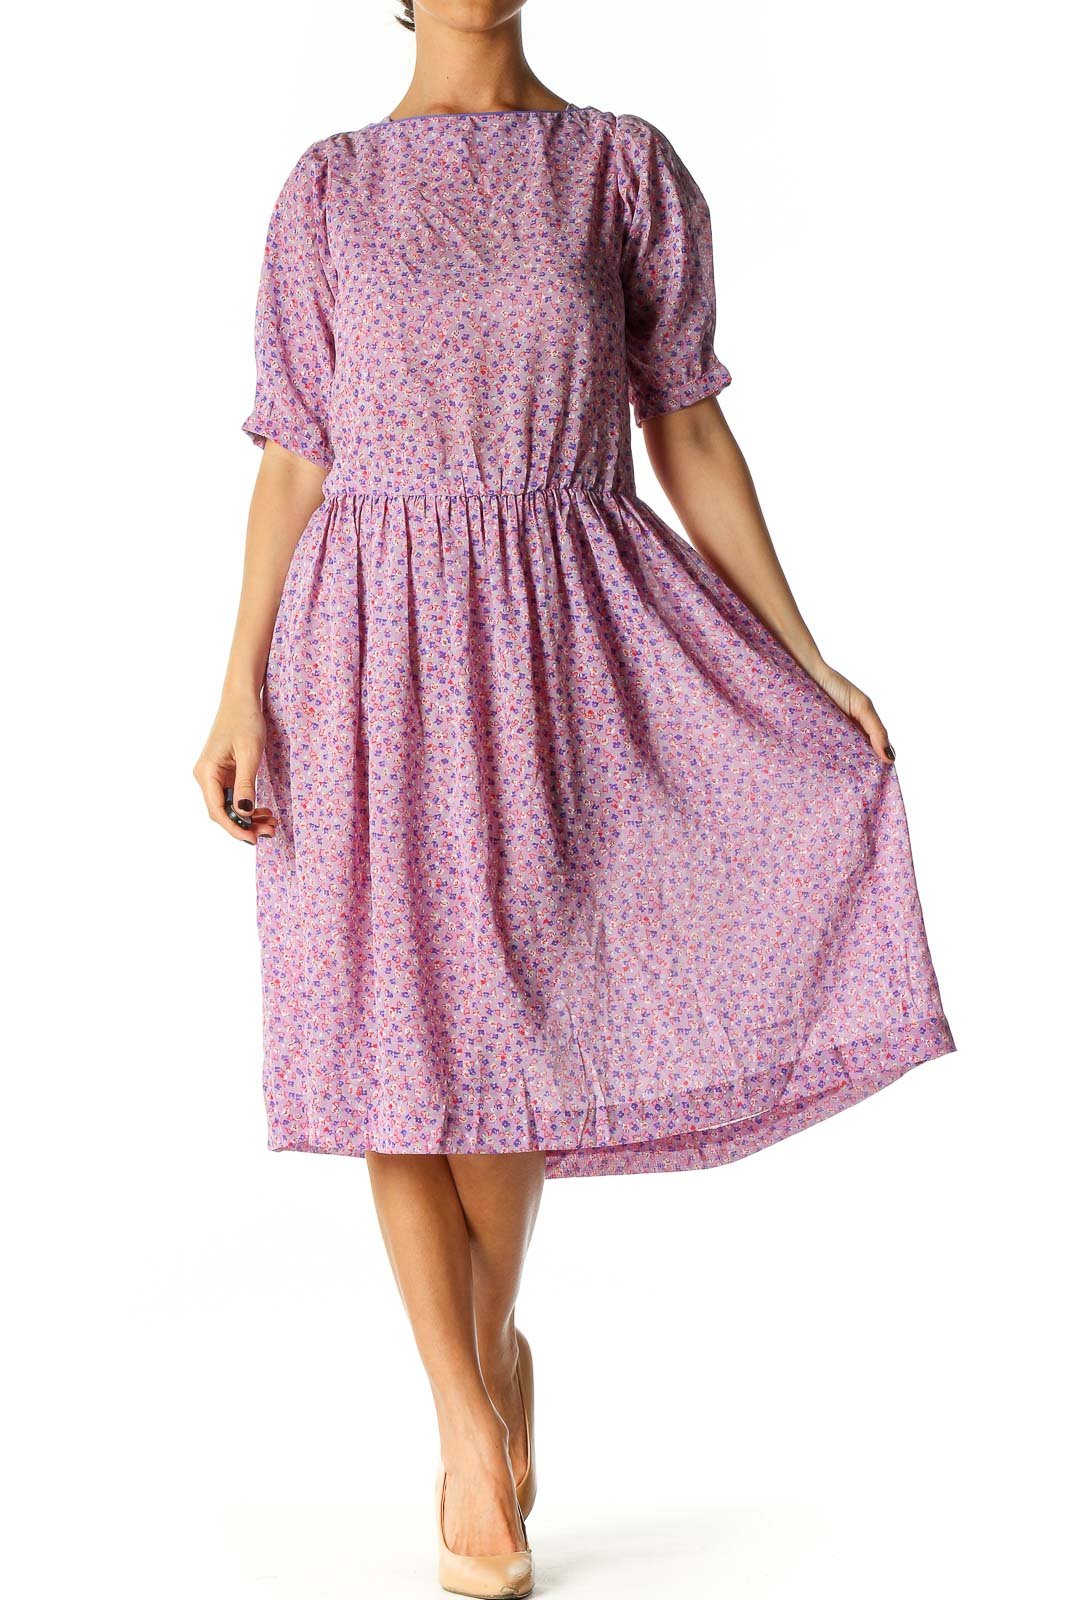 Pink Floral Print Retro Fit & Flare Dress Front